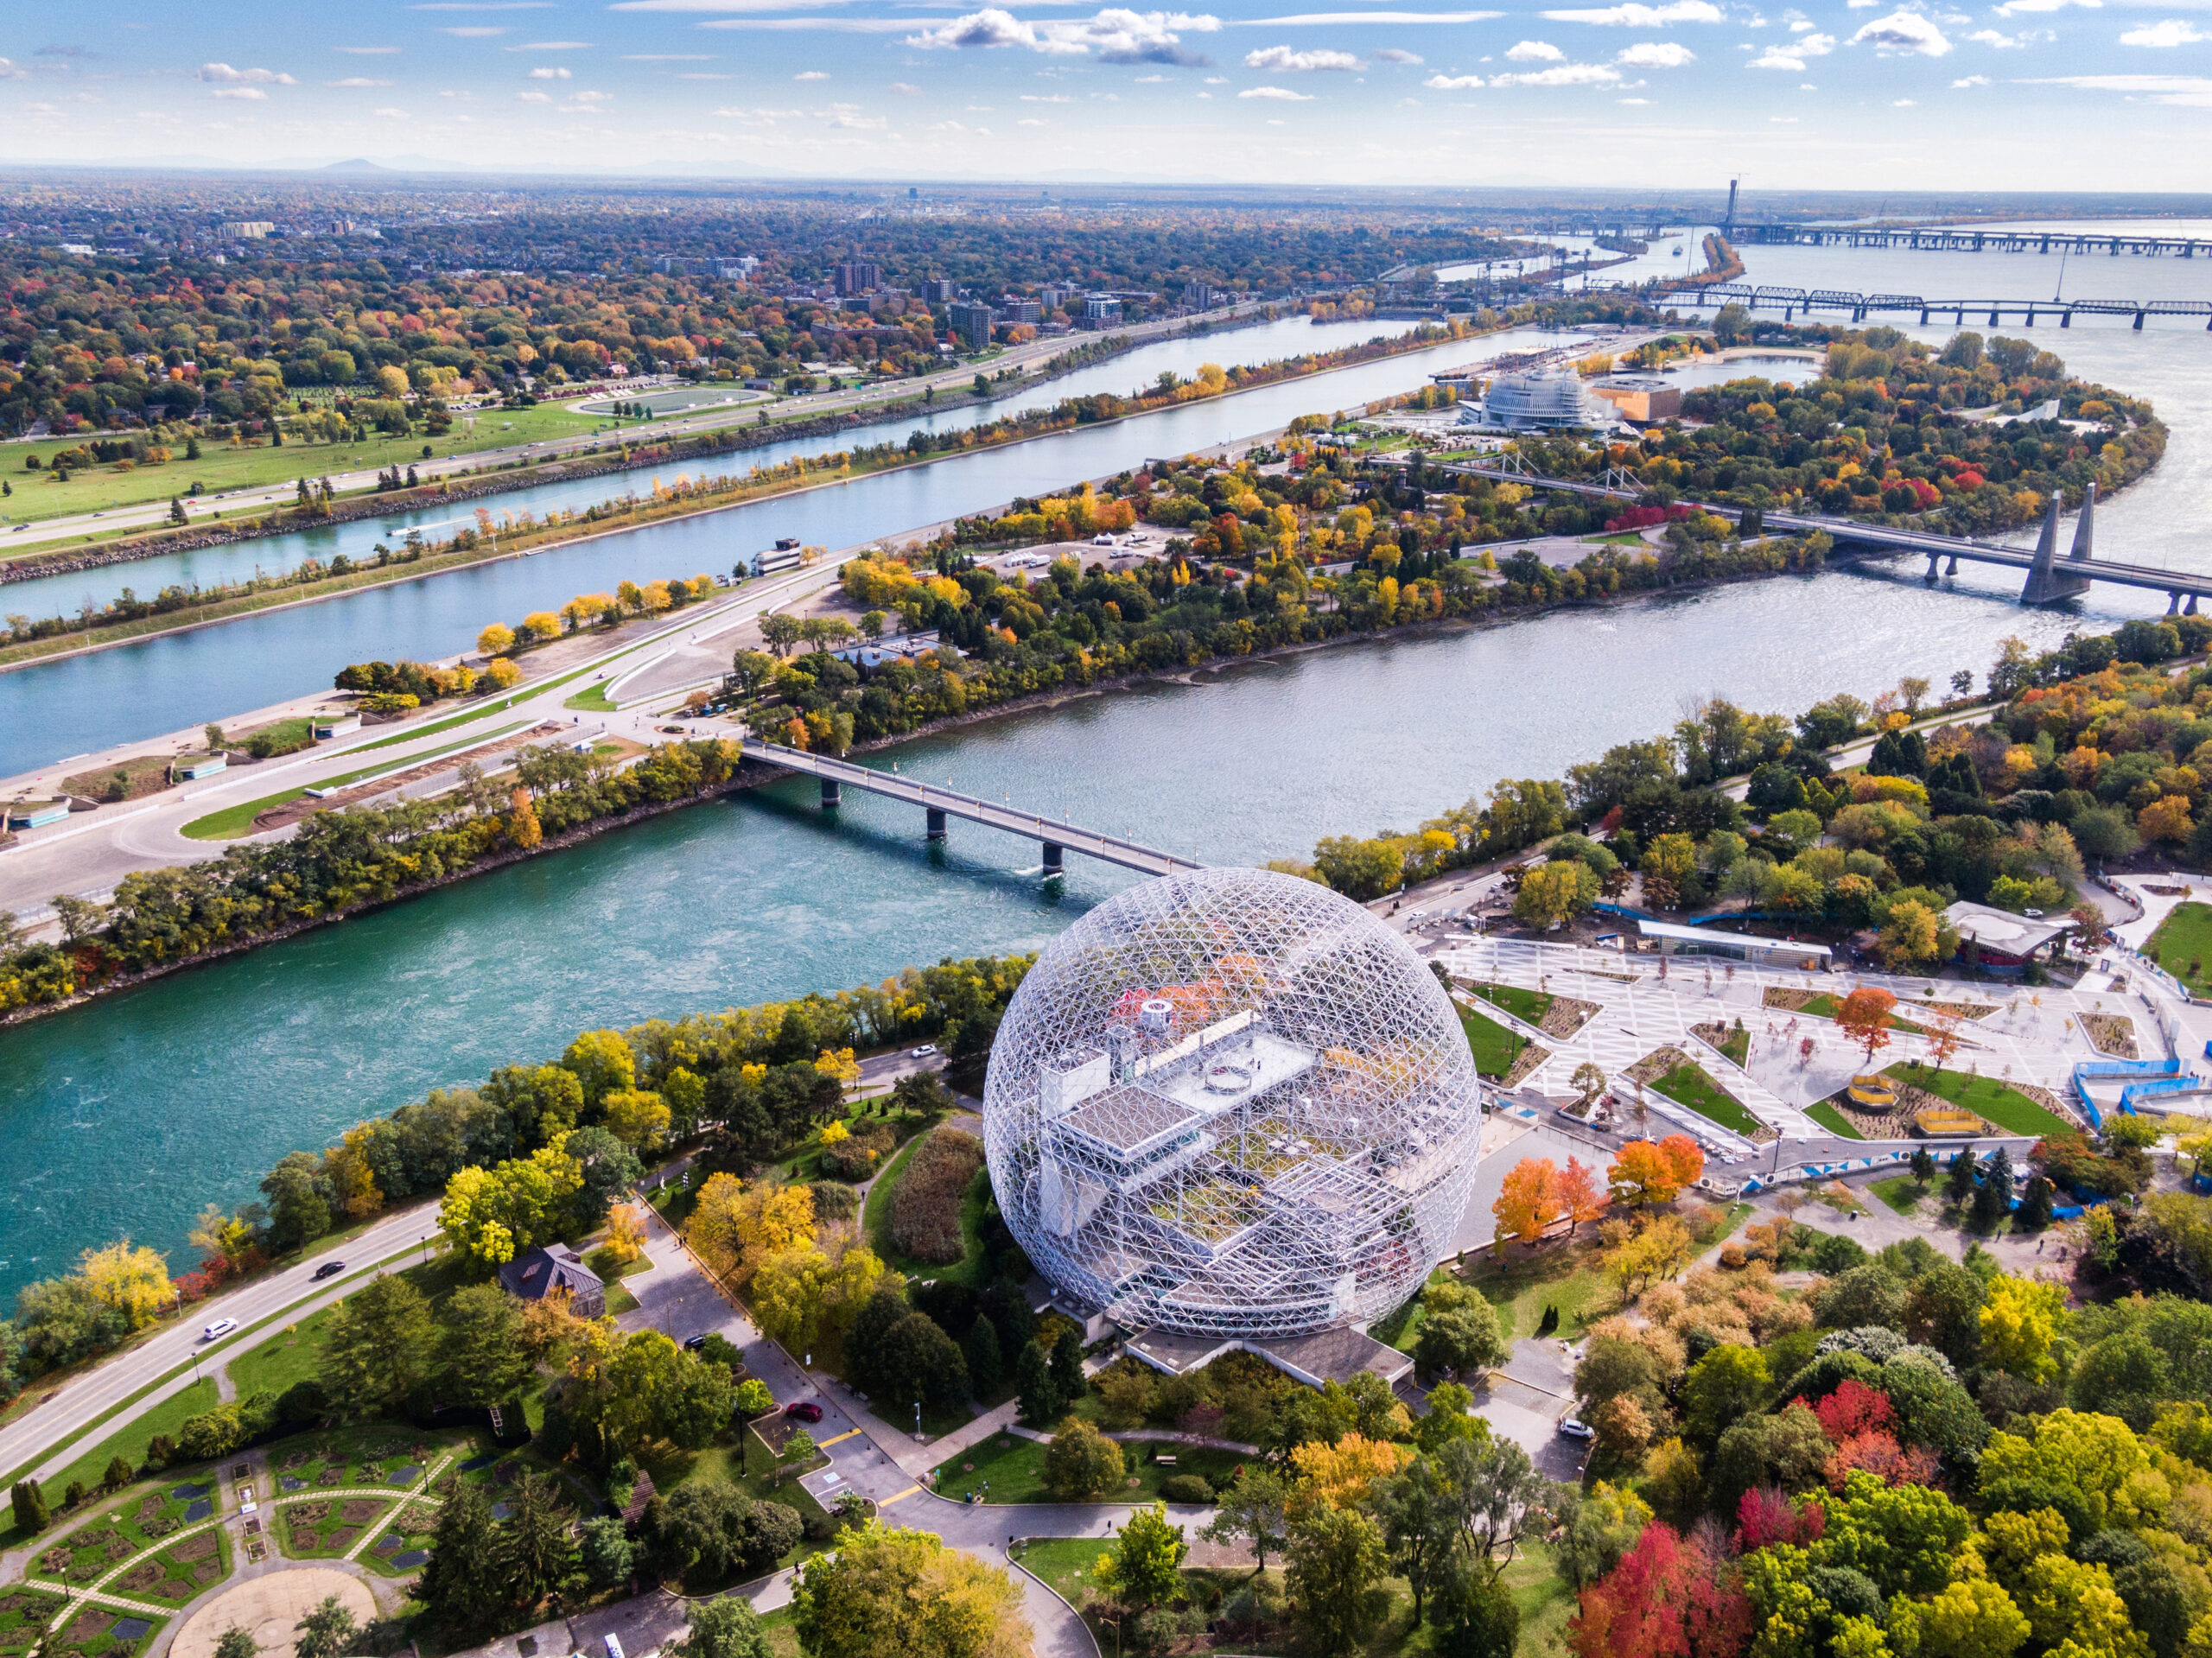 Aerial View of Montreal in Autumn Season, Quebec, Canada